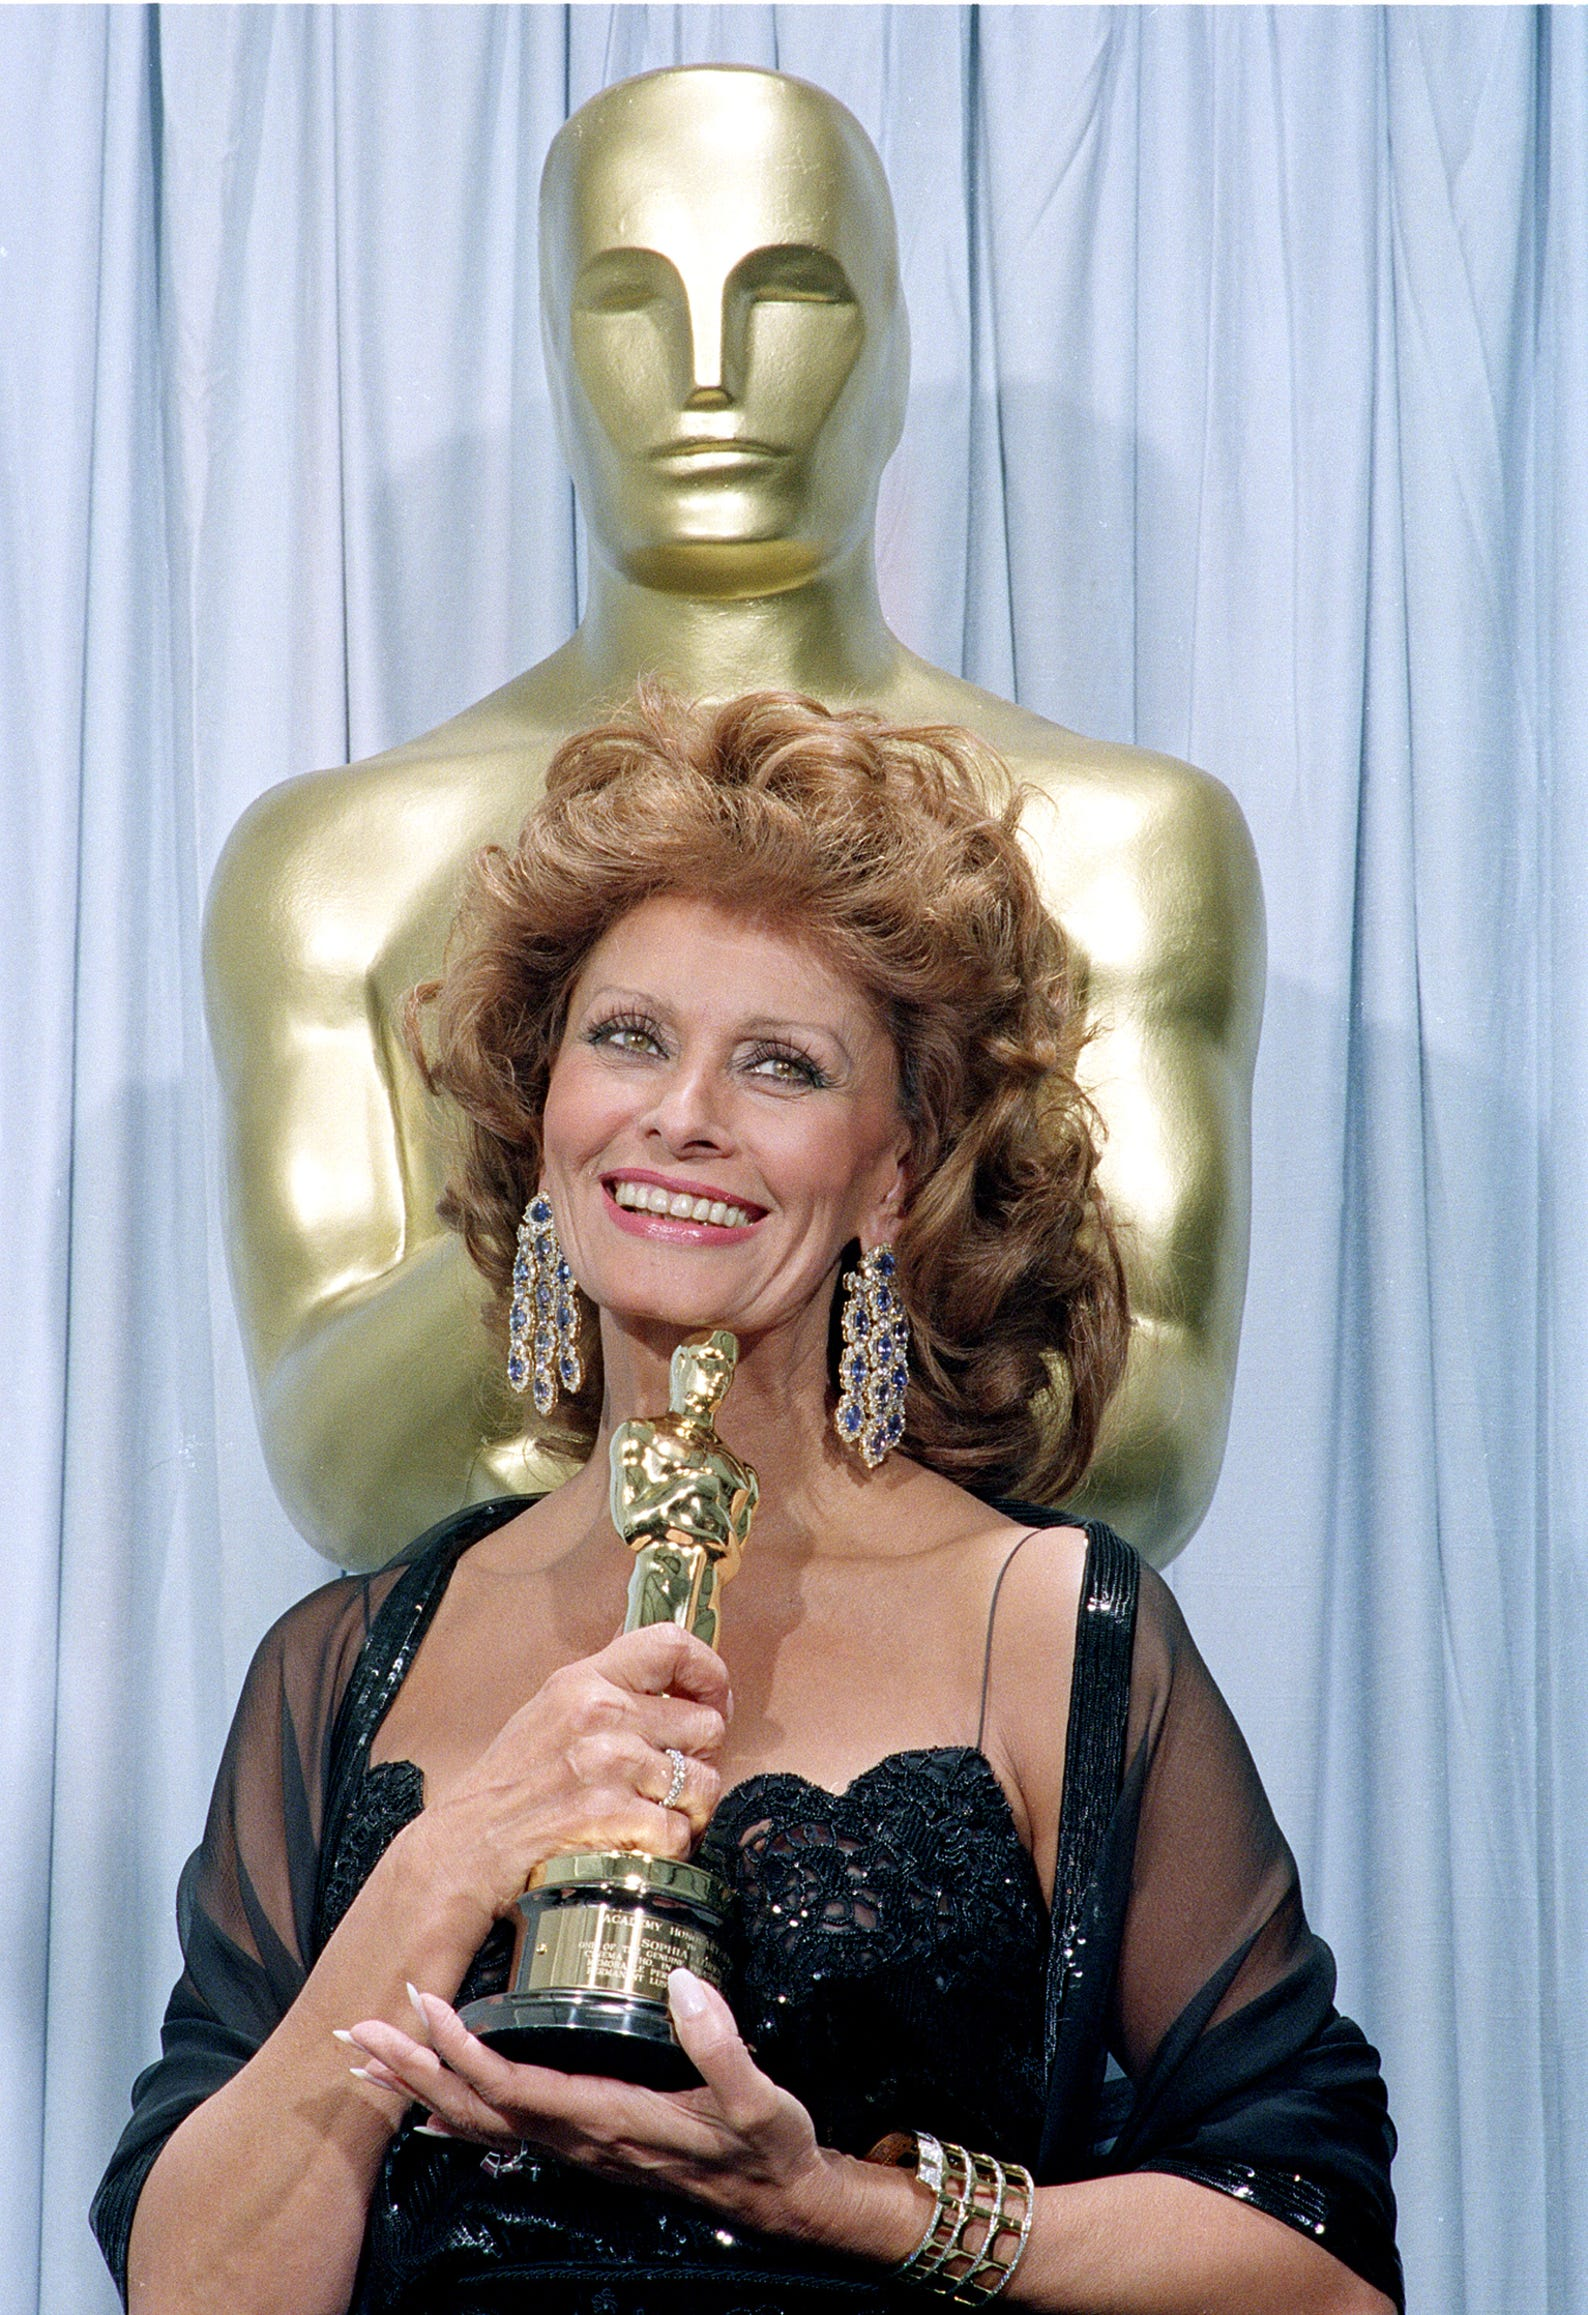 Loren received an honorary Oscar at the 63rd annual Academy Awards on March 25, 1991.